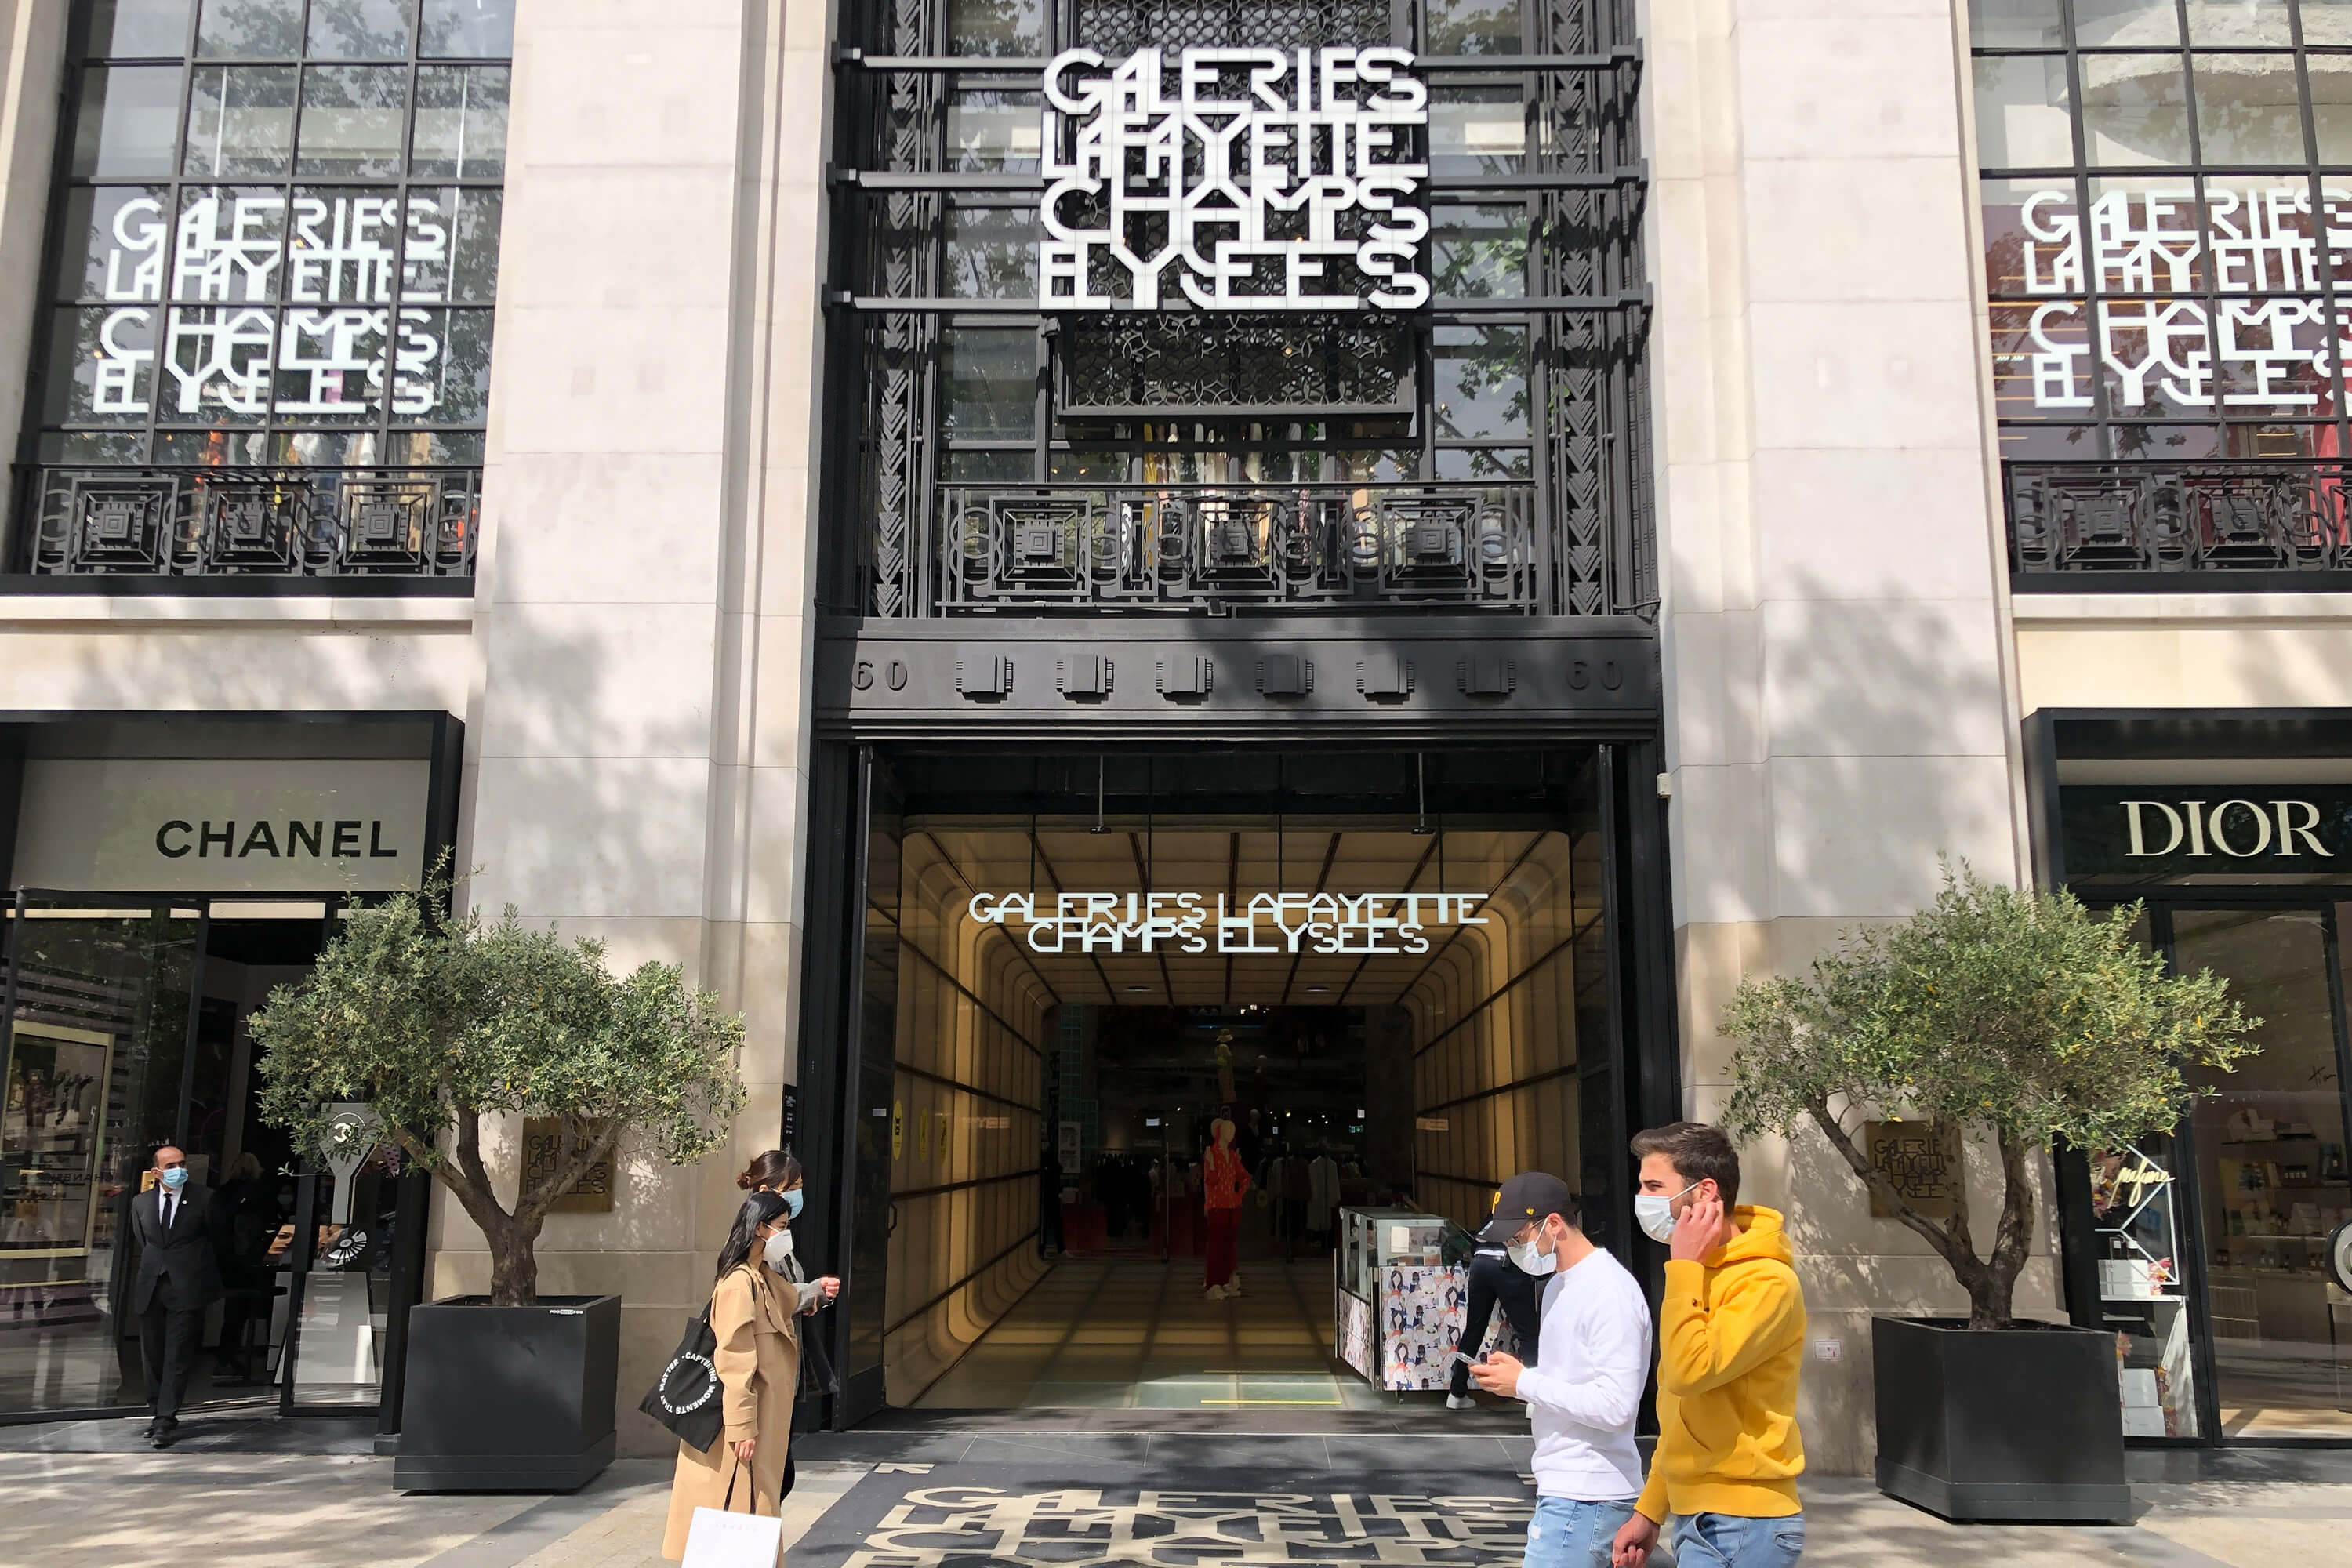 Galeries Lafayette reopens at Champs Elysees in Paris